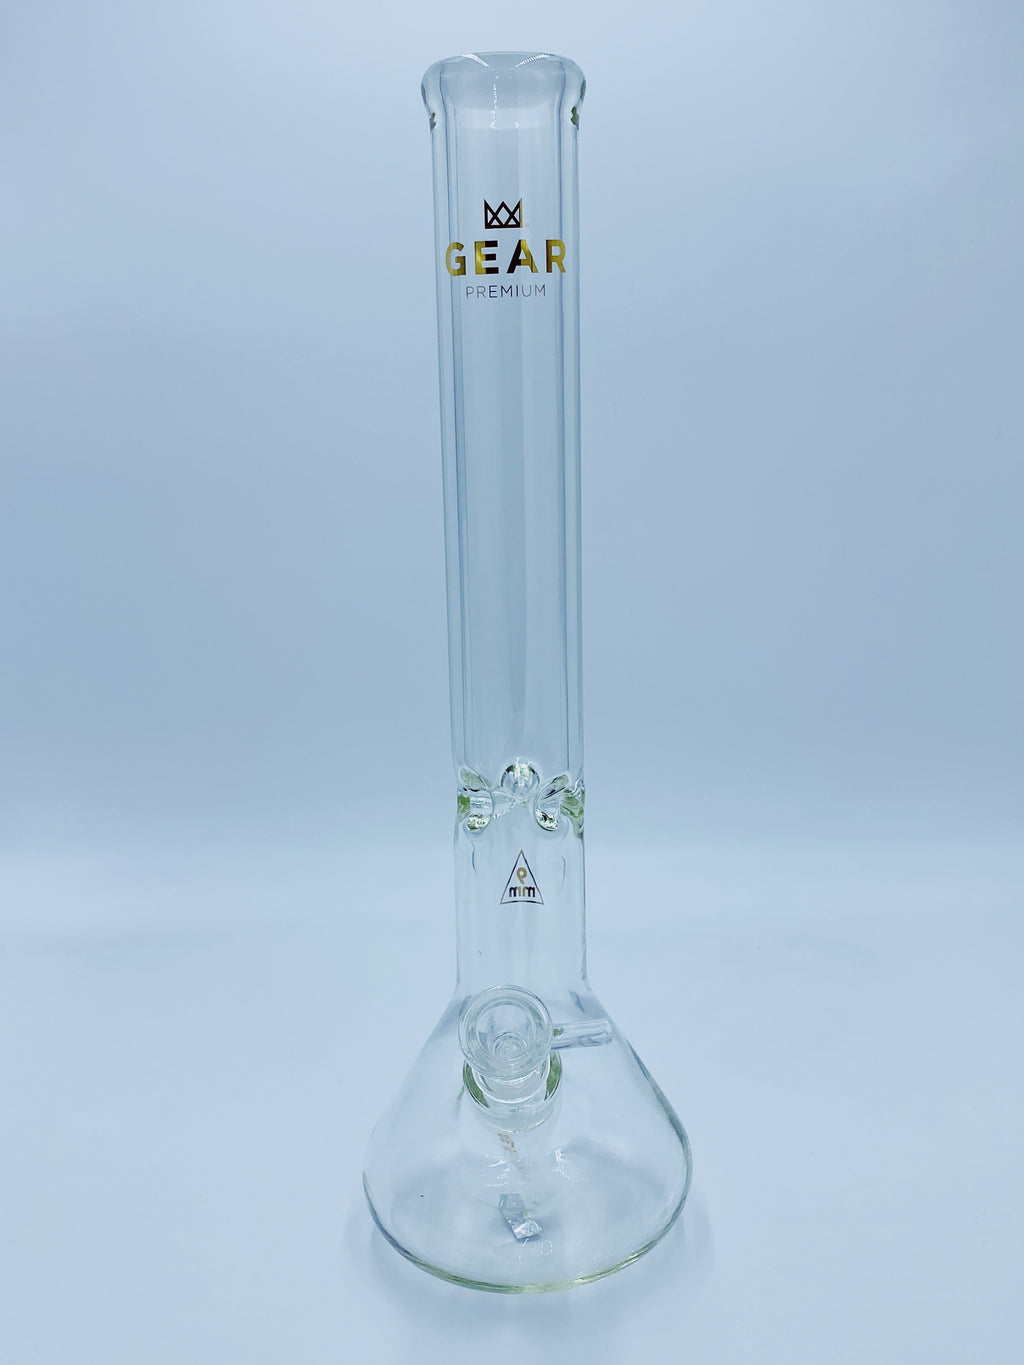 GEAR PREMIUM 9MM BEAKER - Smoke Country - Land of the artistic glass blown bongs